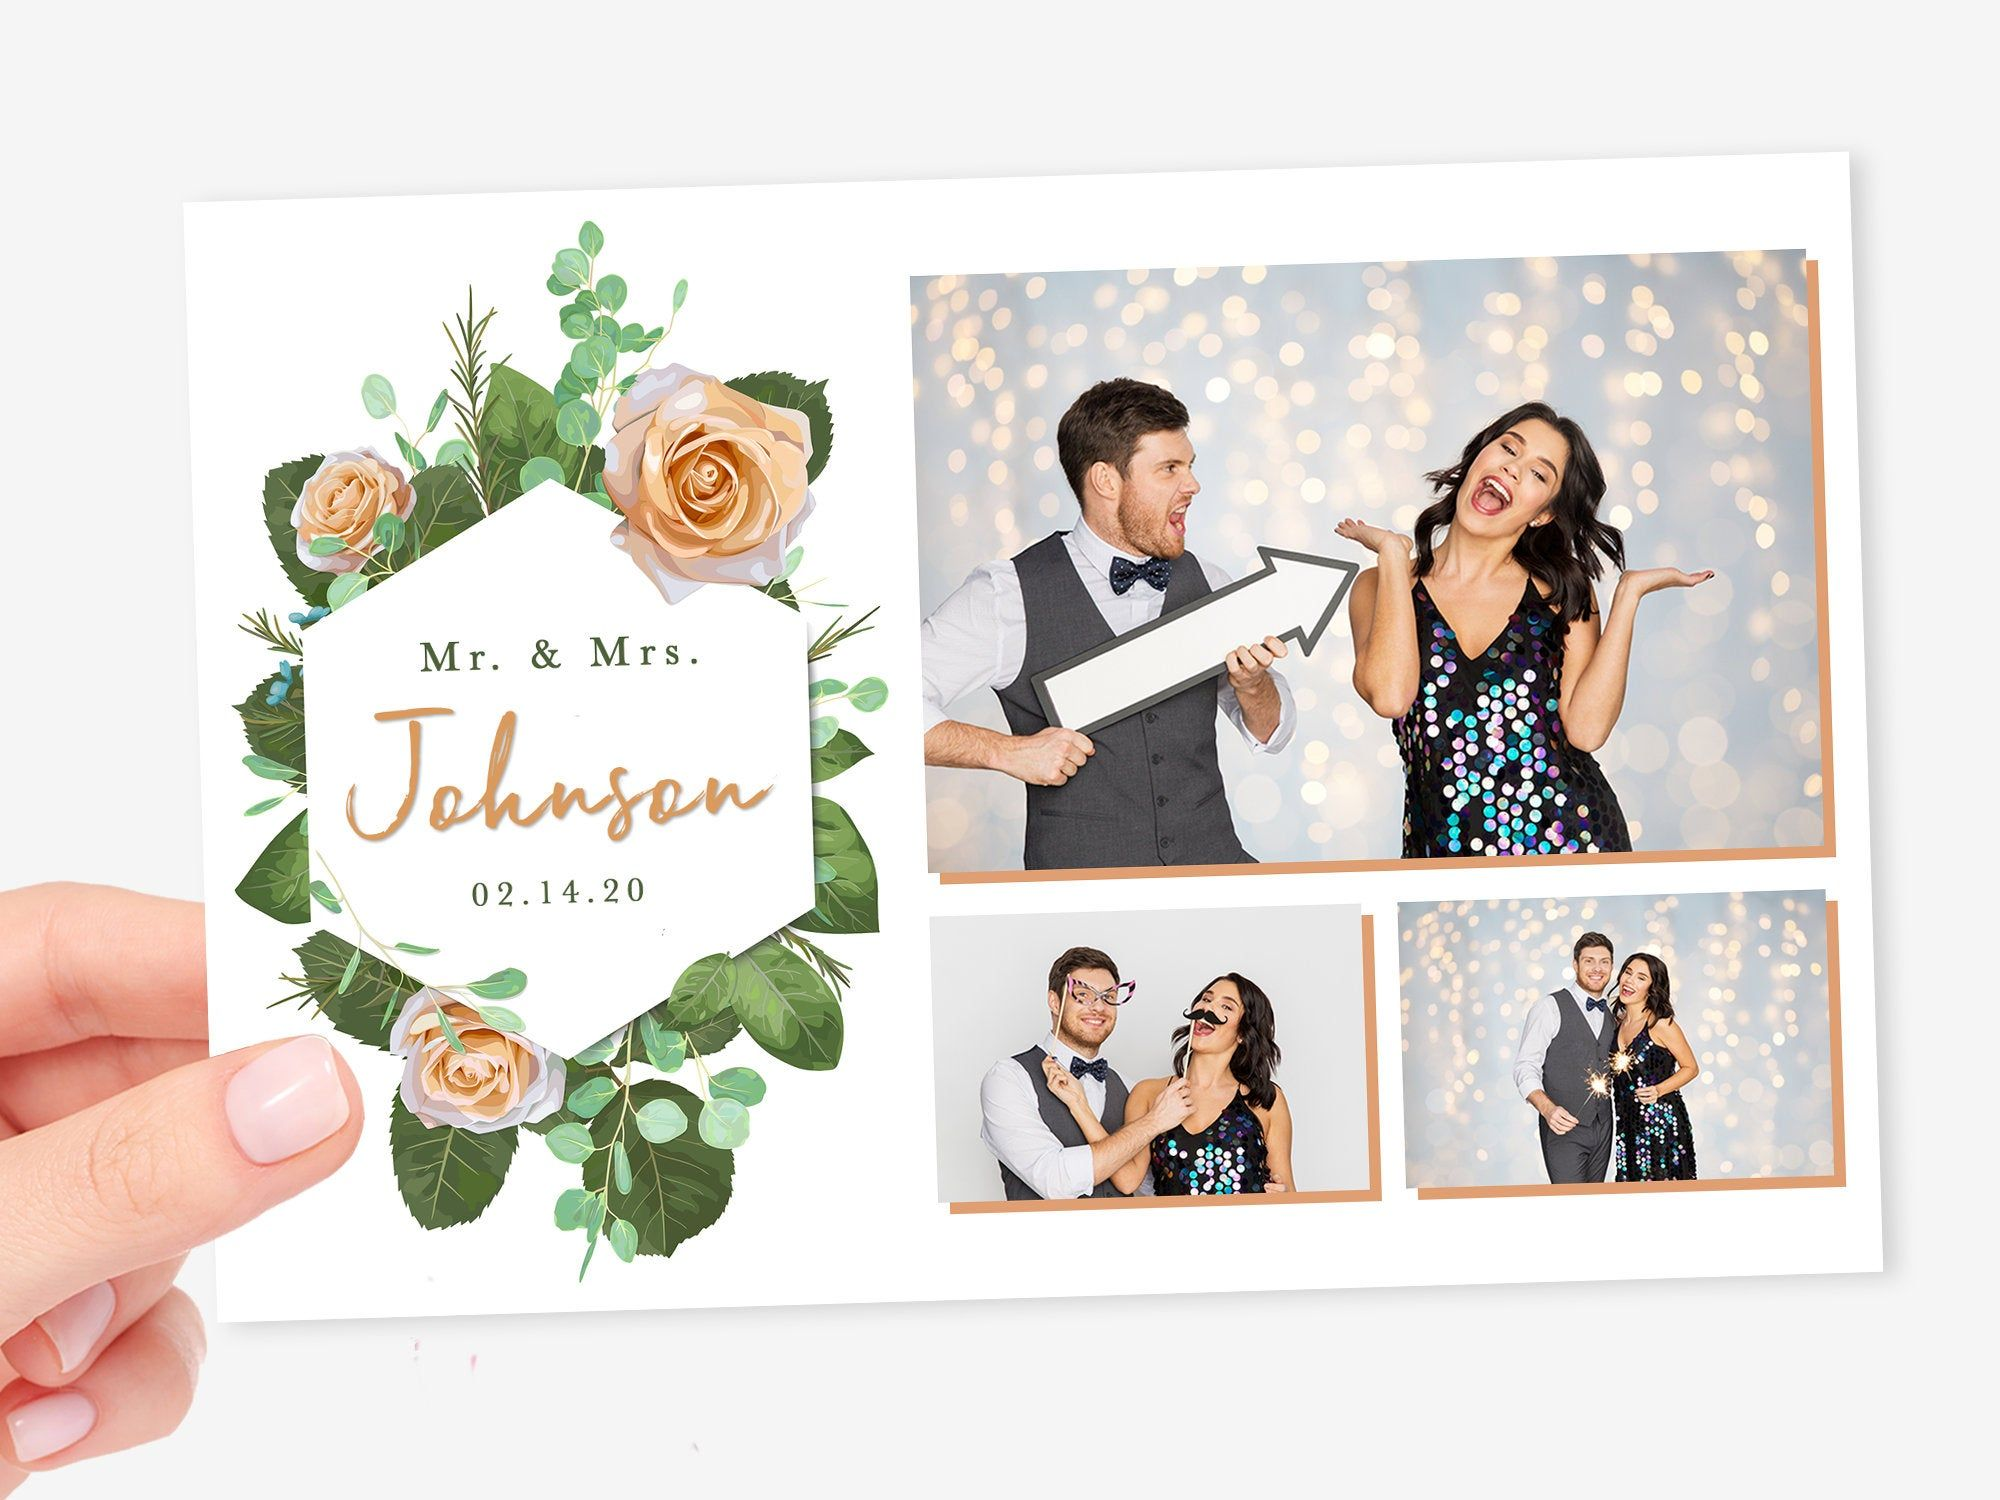 Floral Photo Booth Template Wedding Photo Booth Template Etsy In 2021 Wedding Photo Booth Photo Booth Photobooth Template